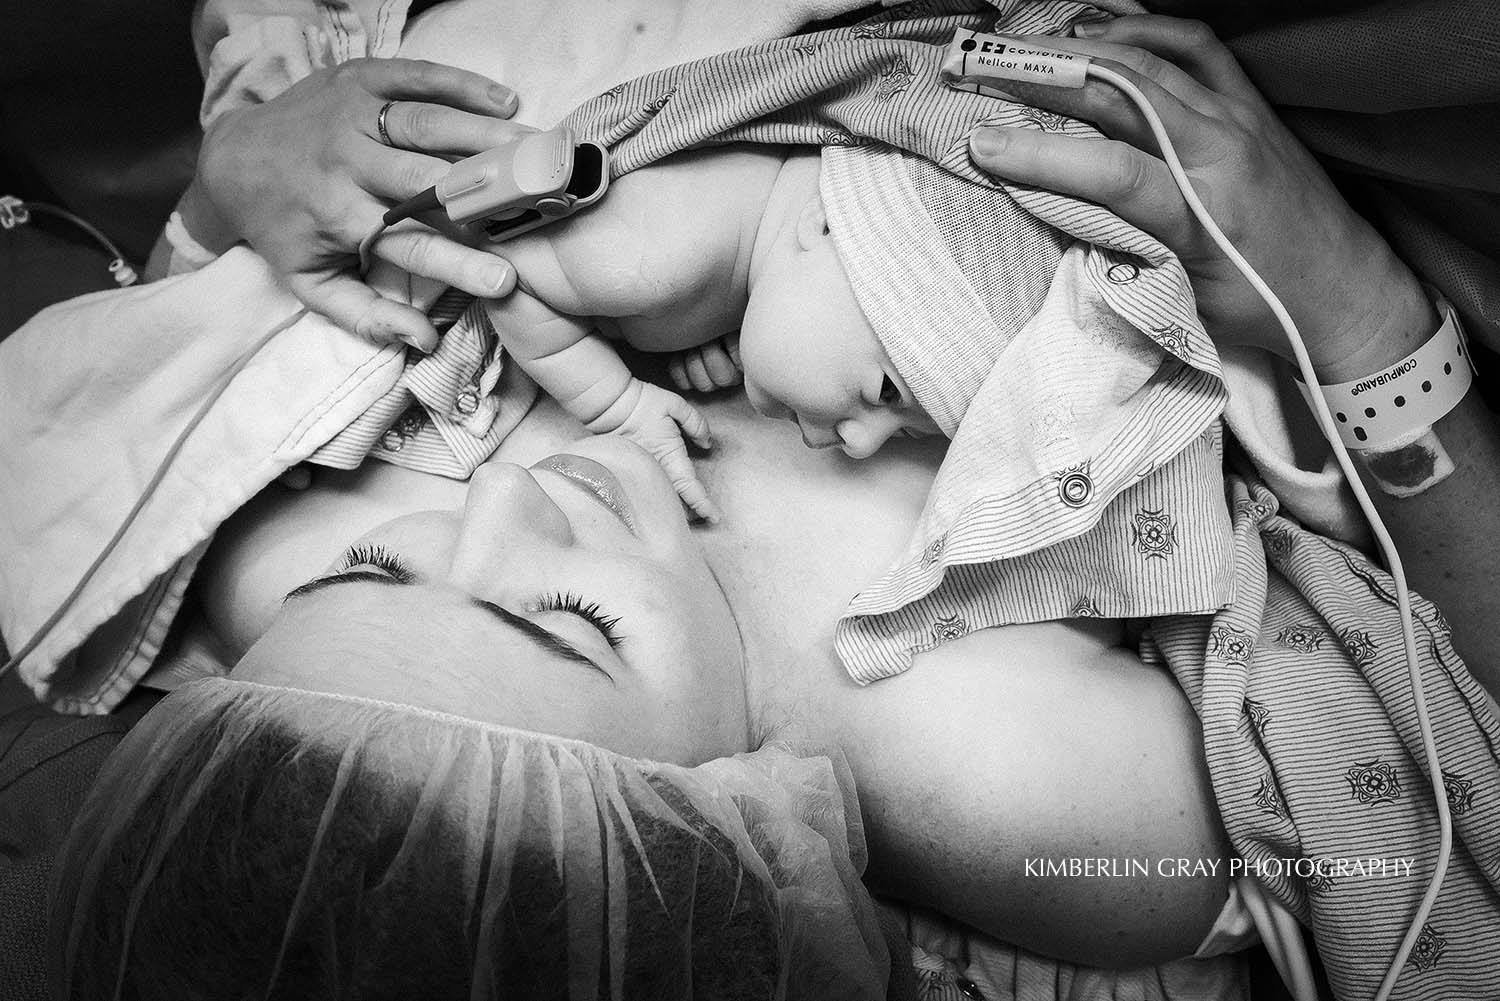 Skin to skin after their cesarean birth.   www.kimberlingrayphotography.com